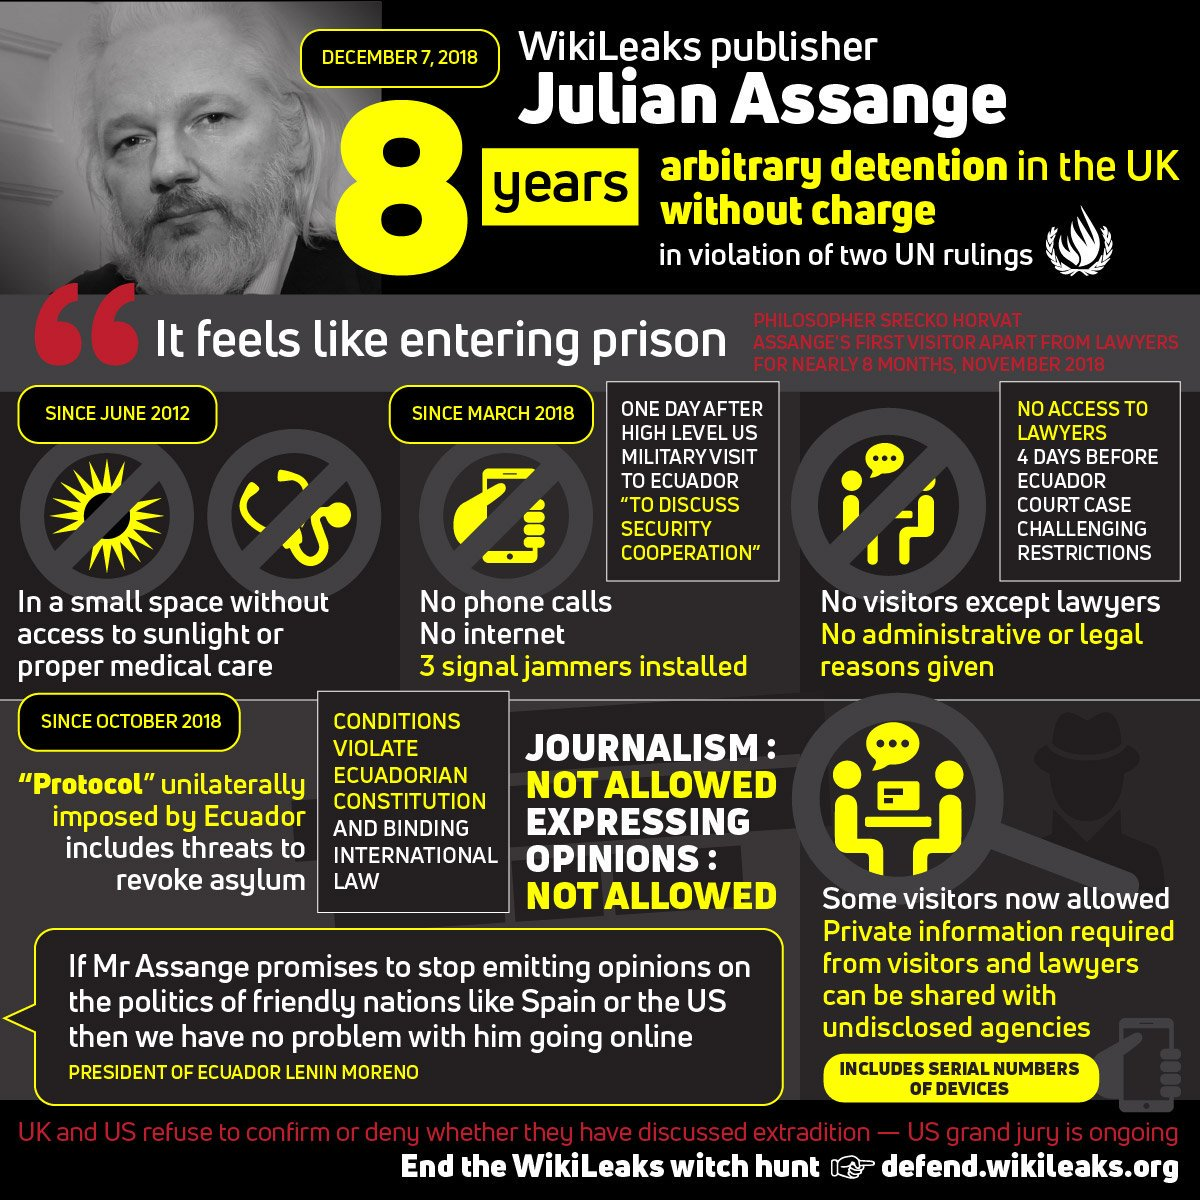 Infographic: The arbitrary detention of Julian Assange defend.wikileaks.org